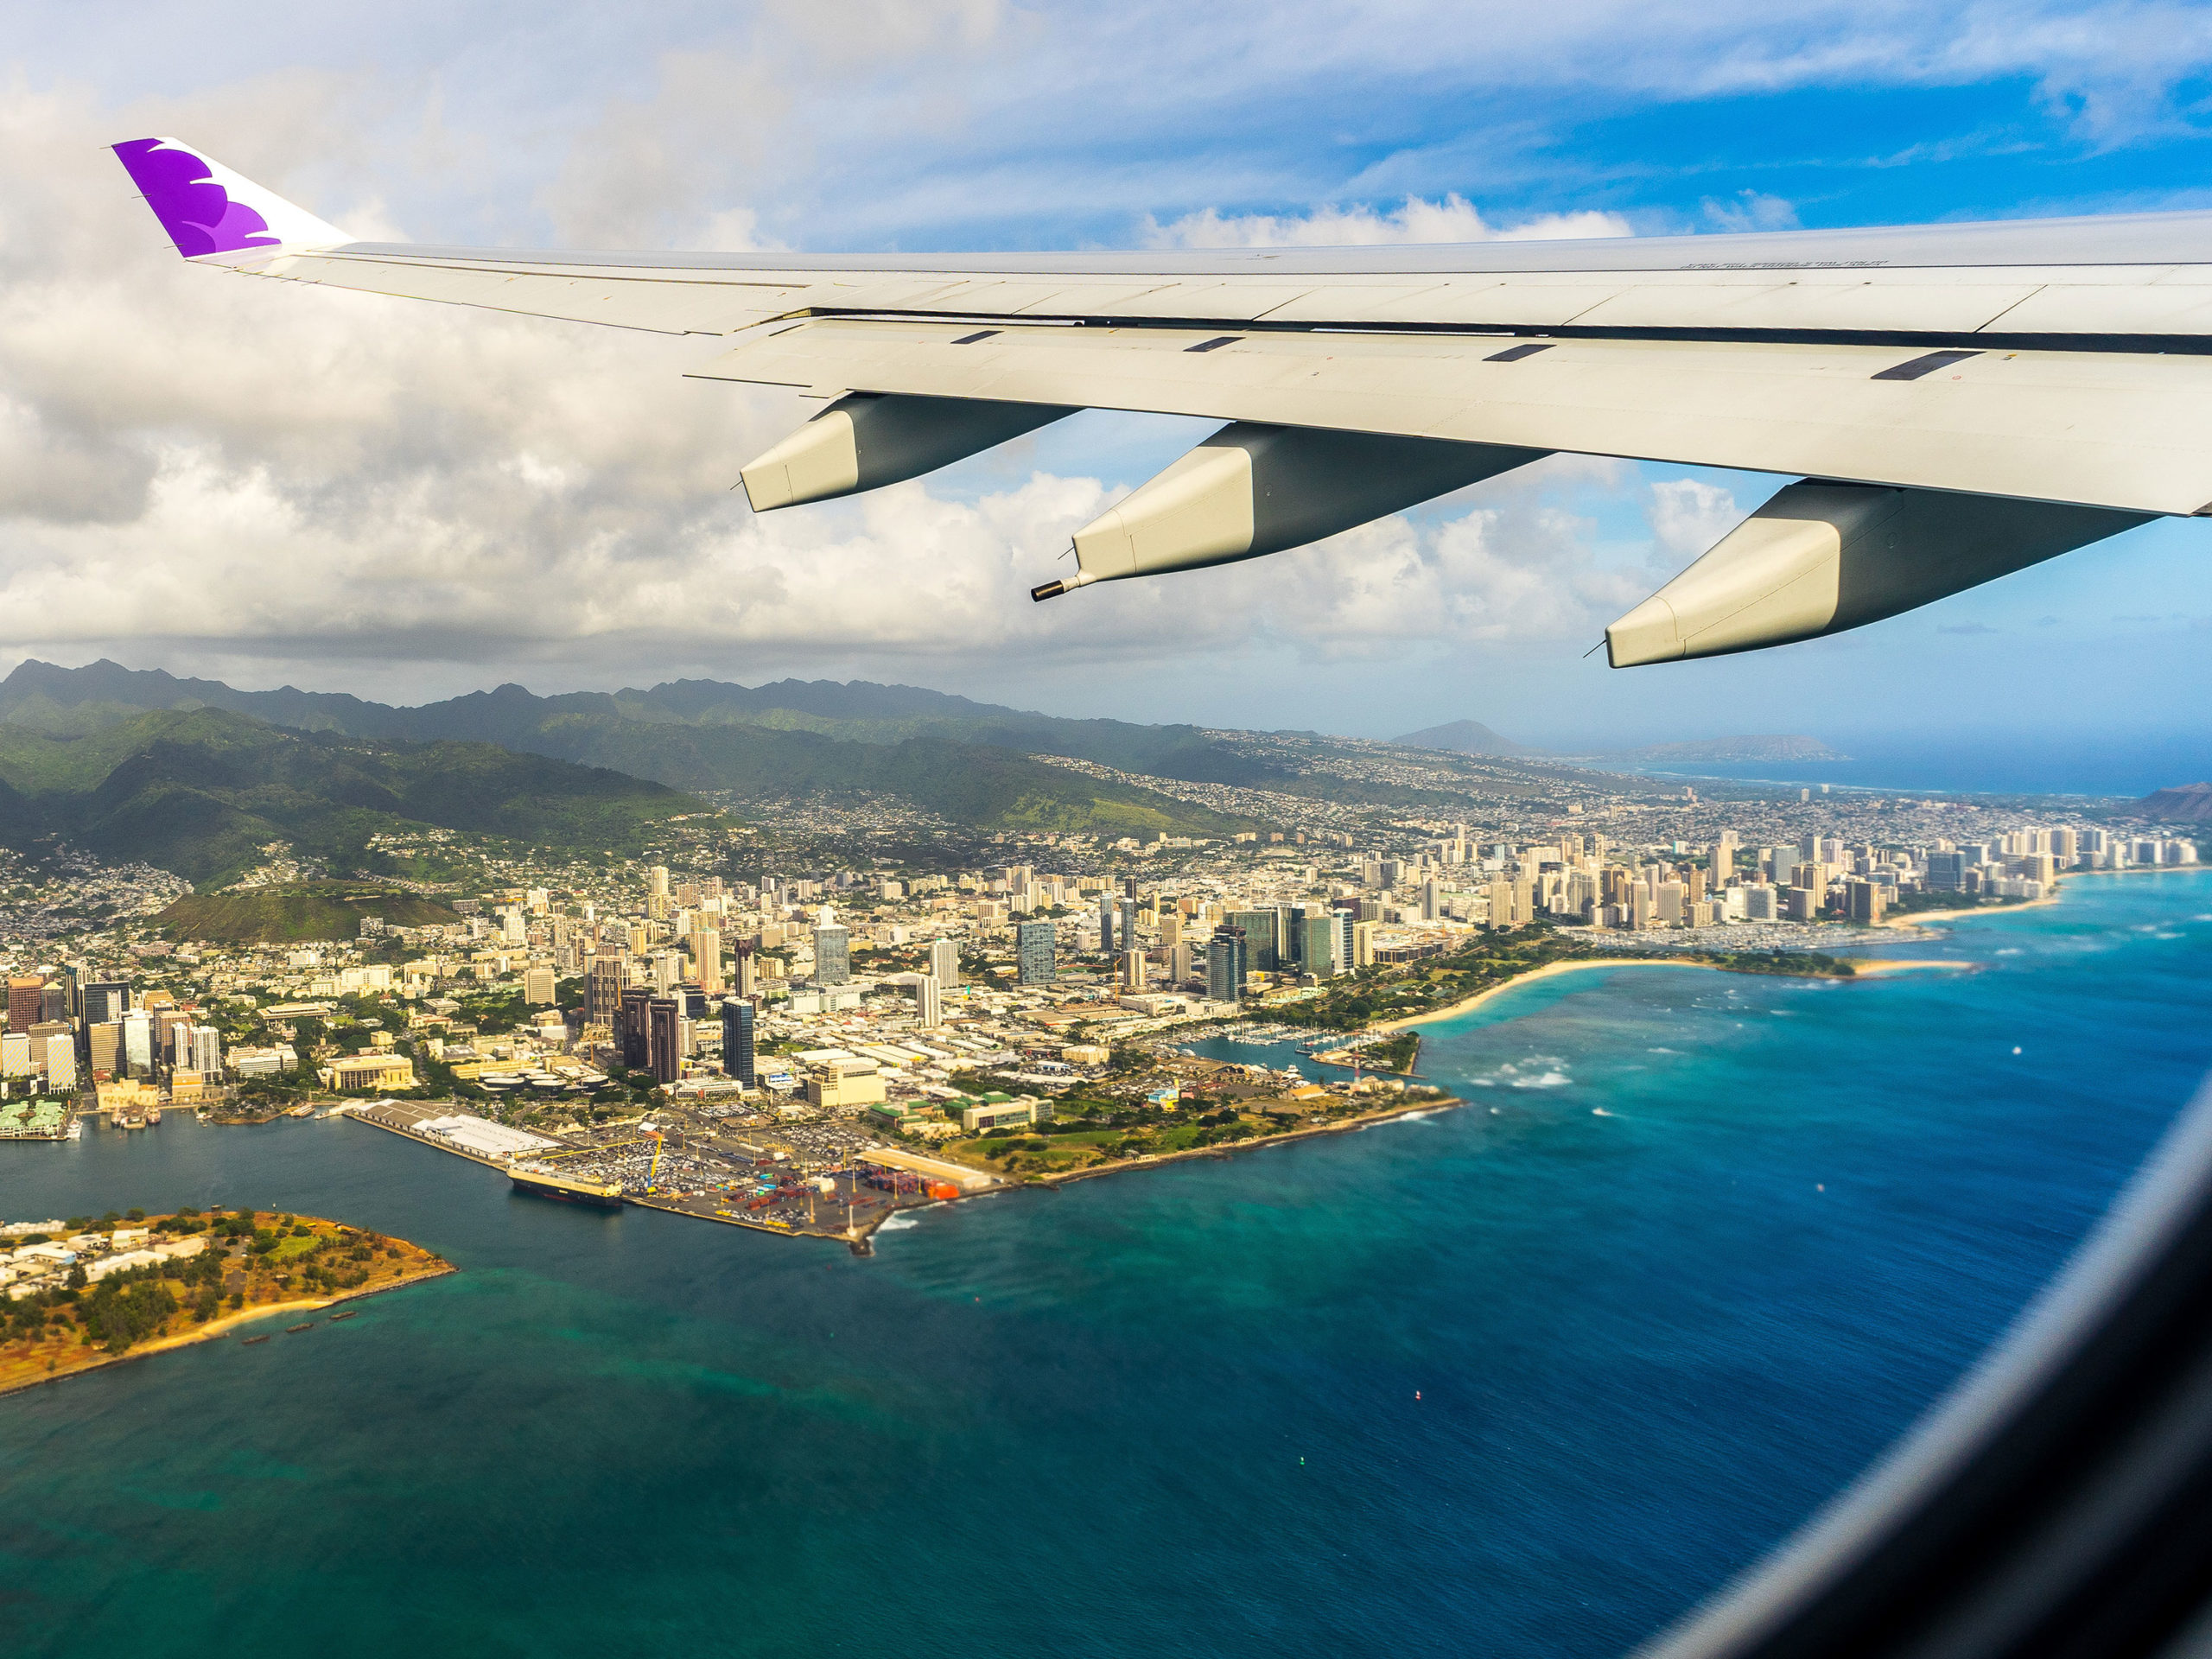 Hawaiian Airlines over Hawaii